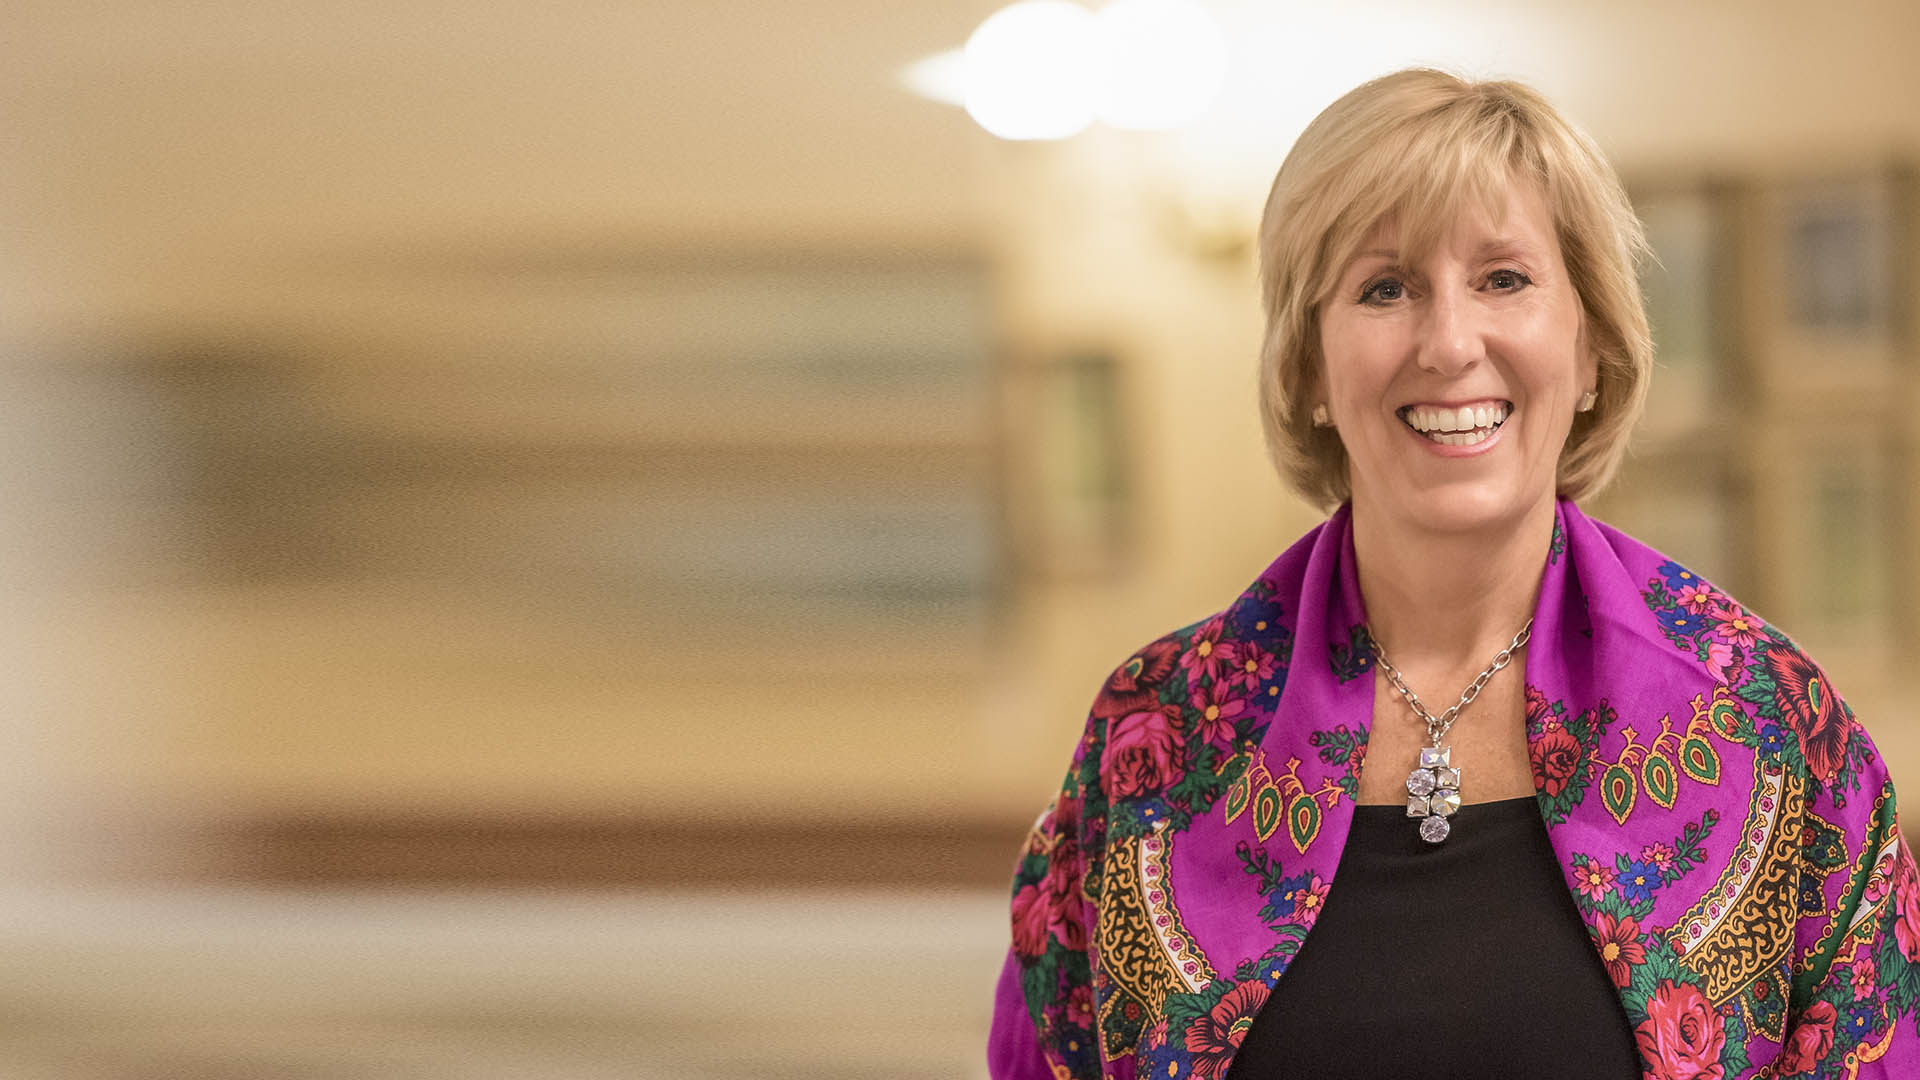 Area MPP Laurie Scott 'excited' to take on new responsibilities